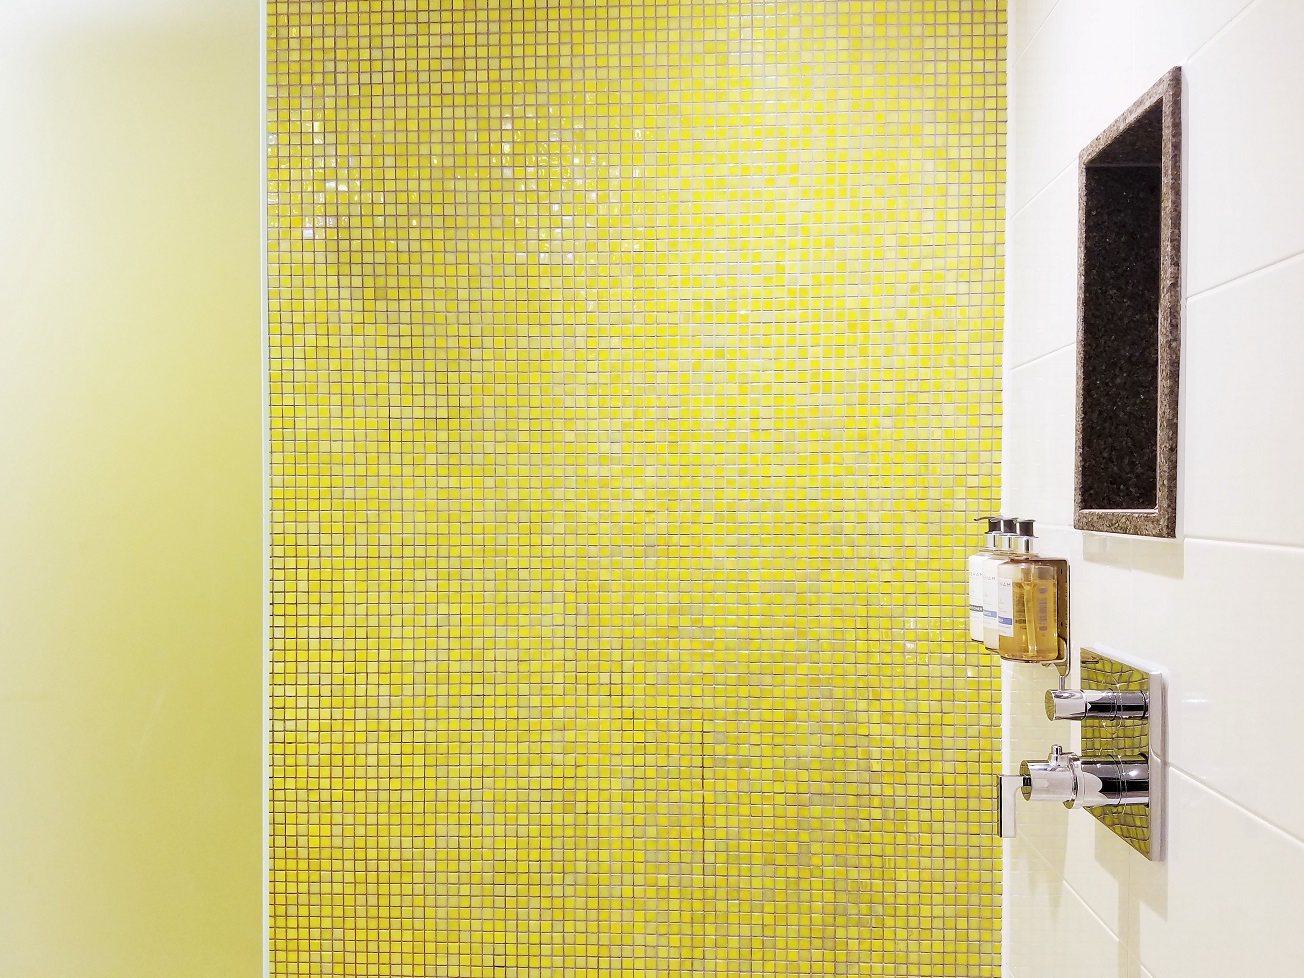 Royal Berkshire Hotel Wet Room Yellow Tiles